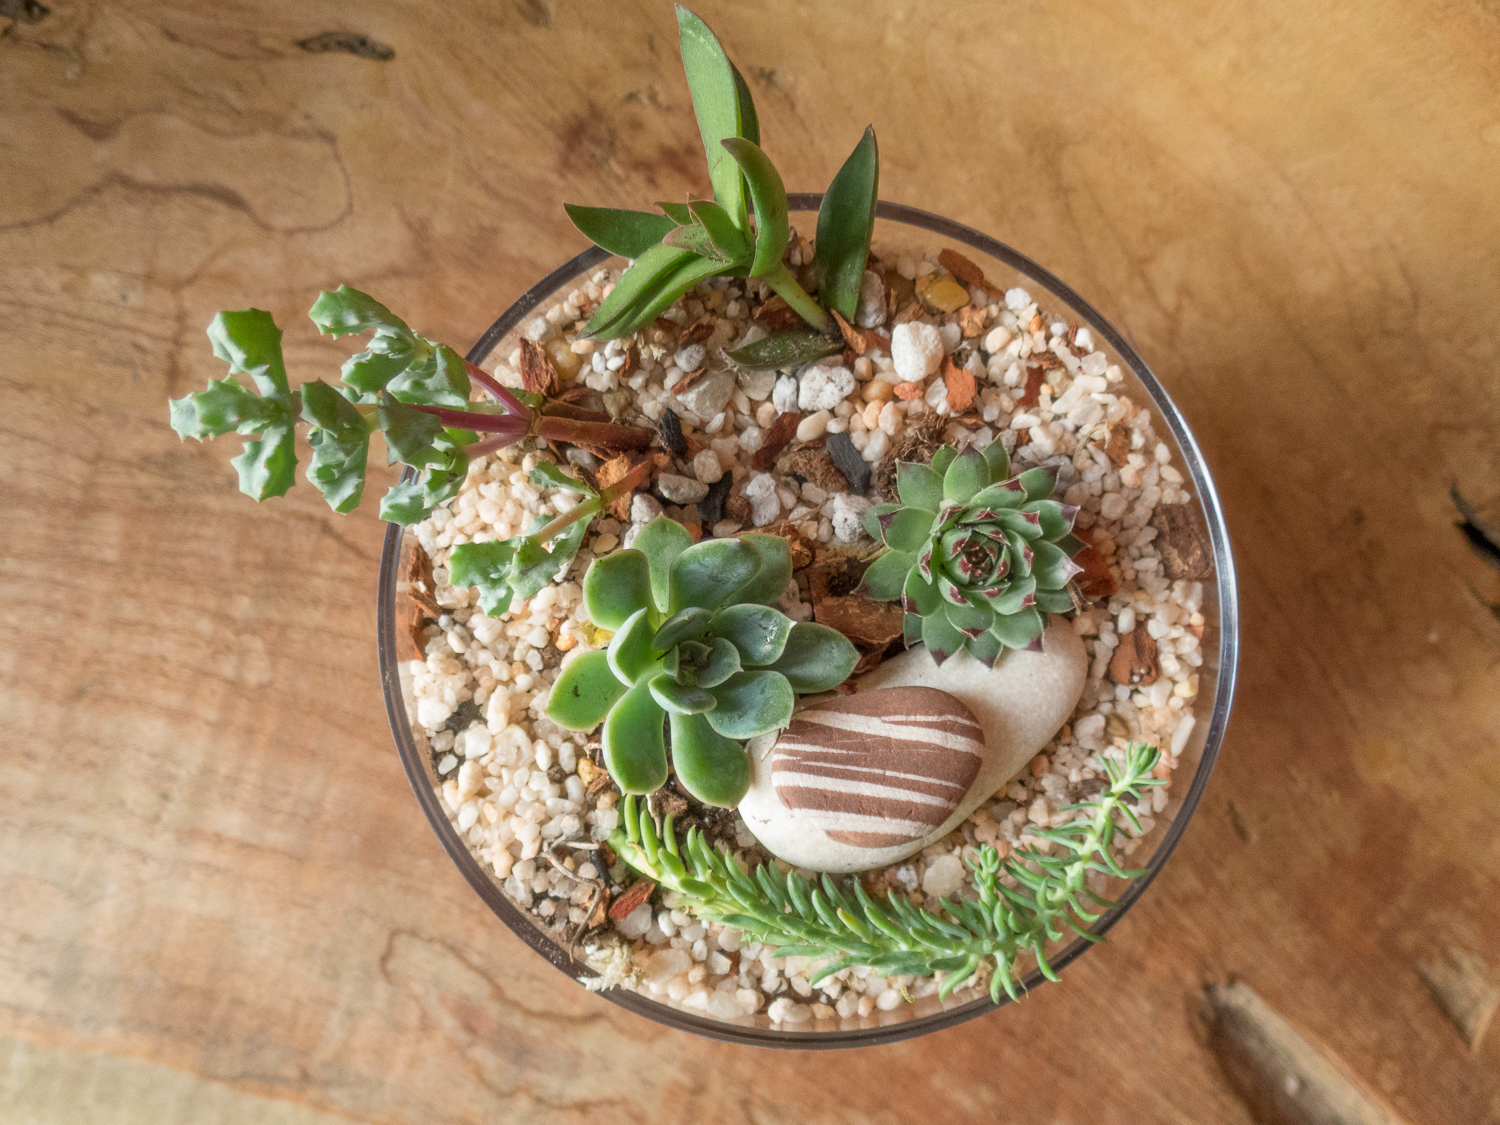 Terrariums Pebble and Branch Floral-14.jpg